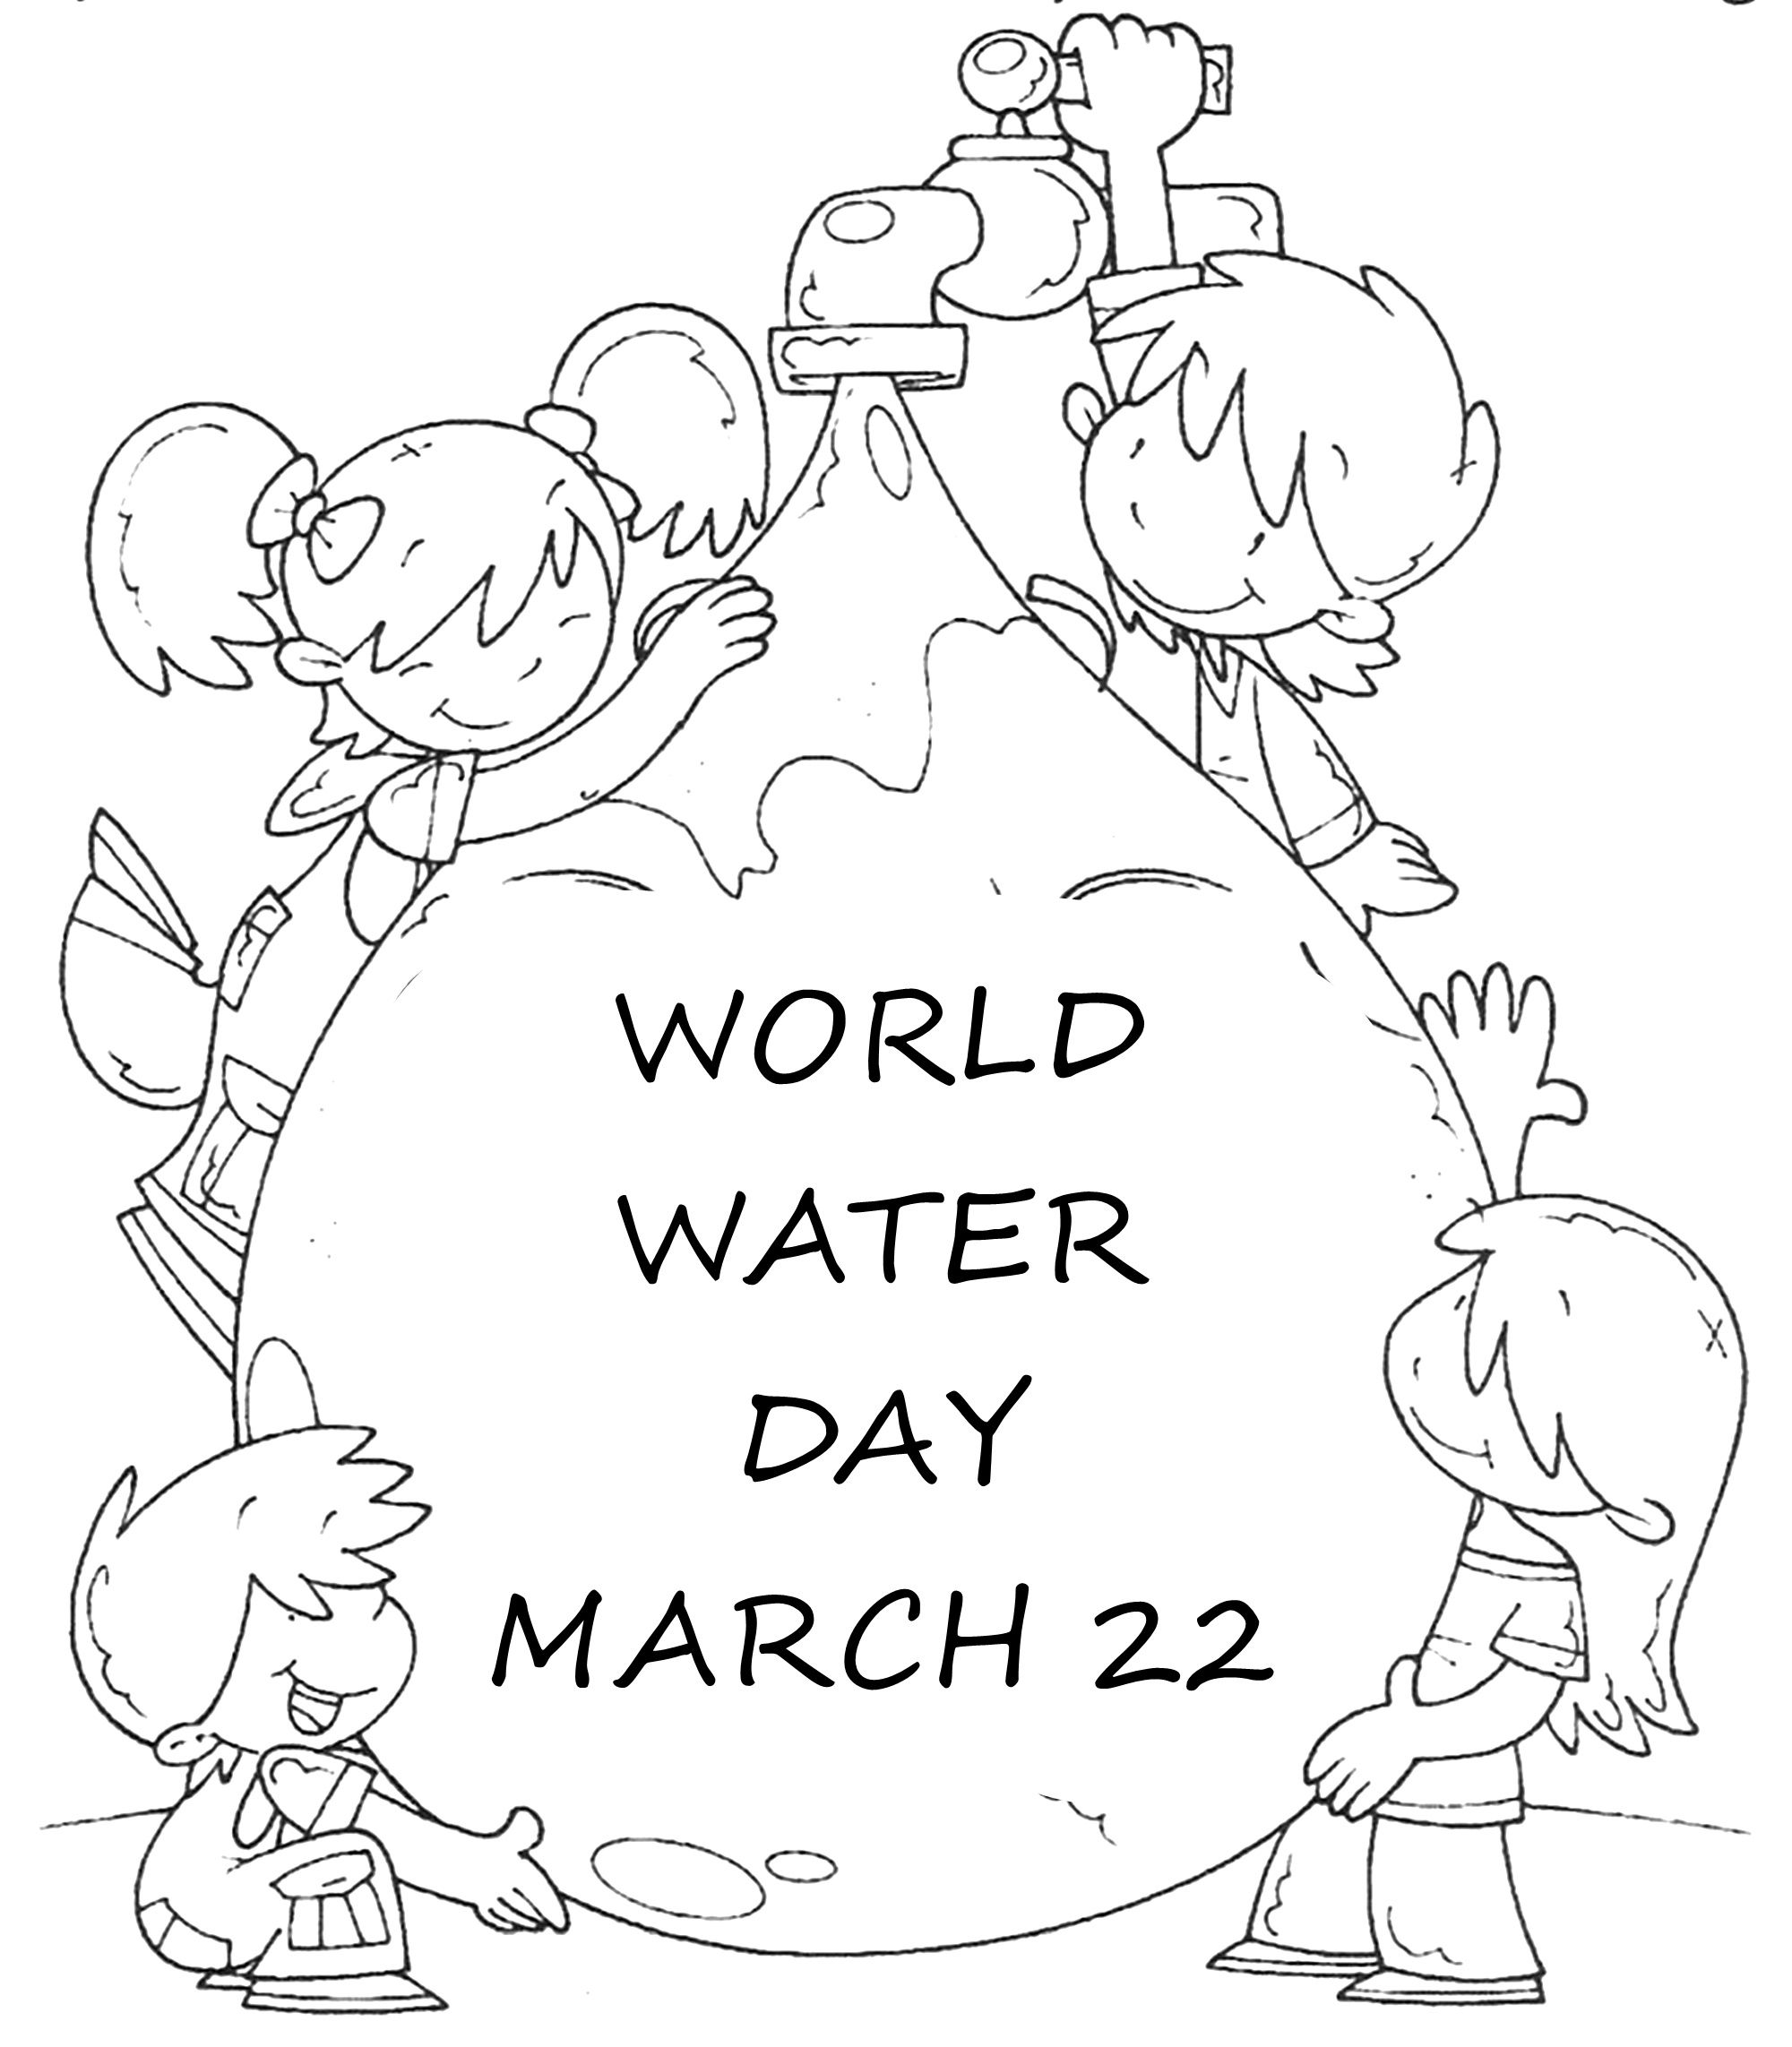 Environmental coloring activities - World Water Day Coloring Page Activity